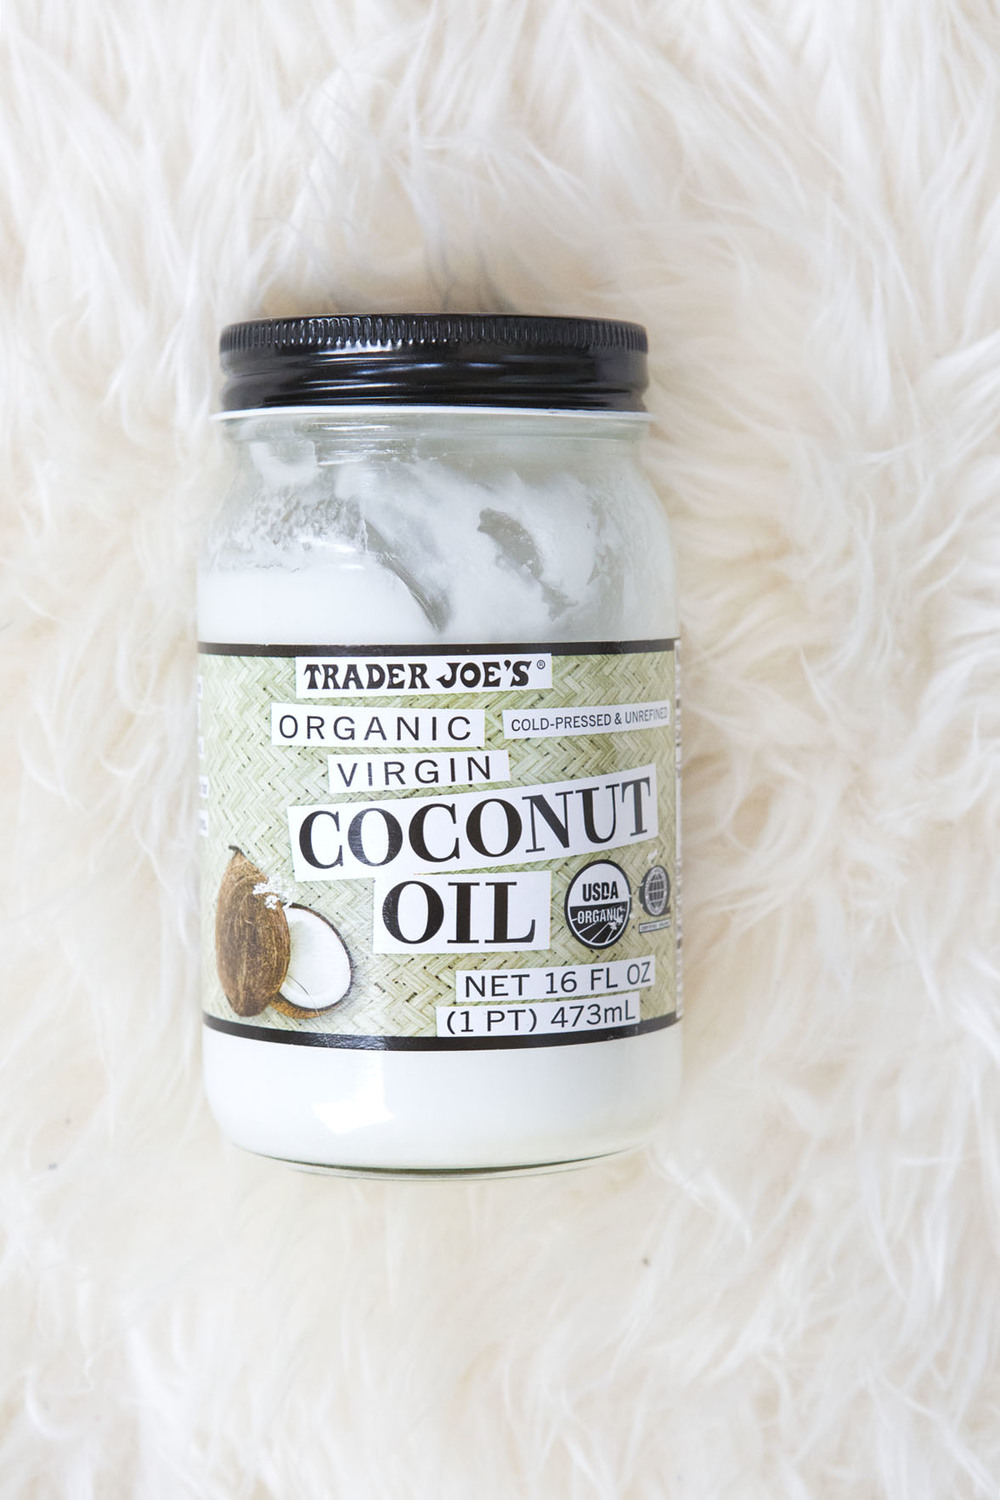 Coconut oil is a no brainer for your beauty routine. First, it's available at any grocery store and it's inexpensive. Beyond that, it is THE BEST moisturizer on the planet. Hands down. I use it on my face and whole body and it works miracles. It has almost completely eliminated by exima (even in the winter) since I started using it. I swear by this stuff and truly think every person should use it for their skin. Find it  HERE